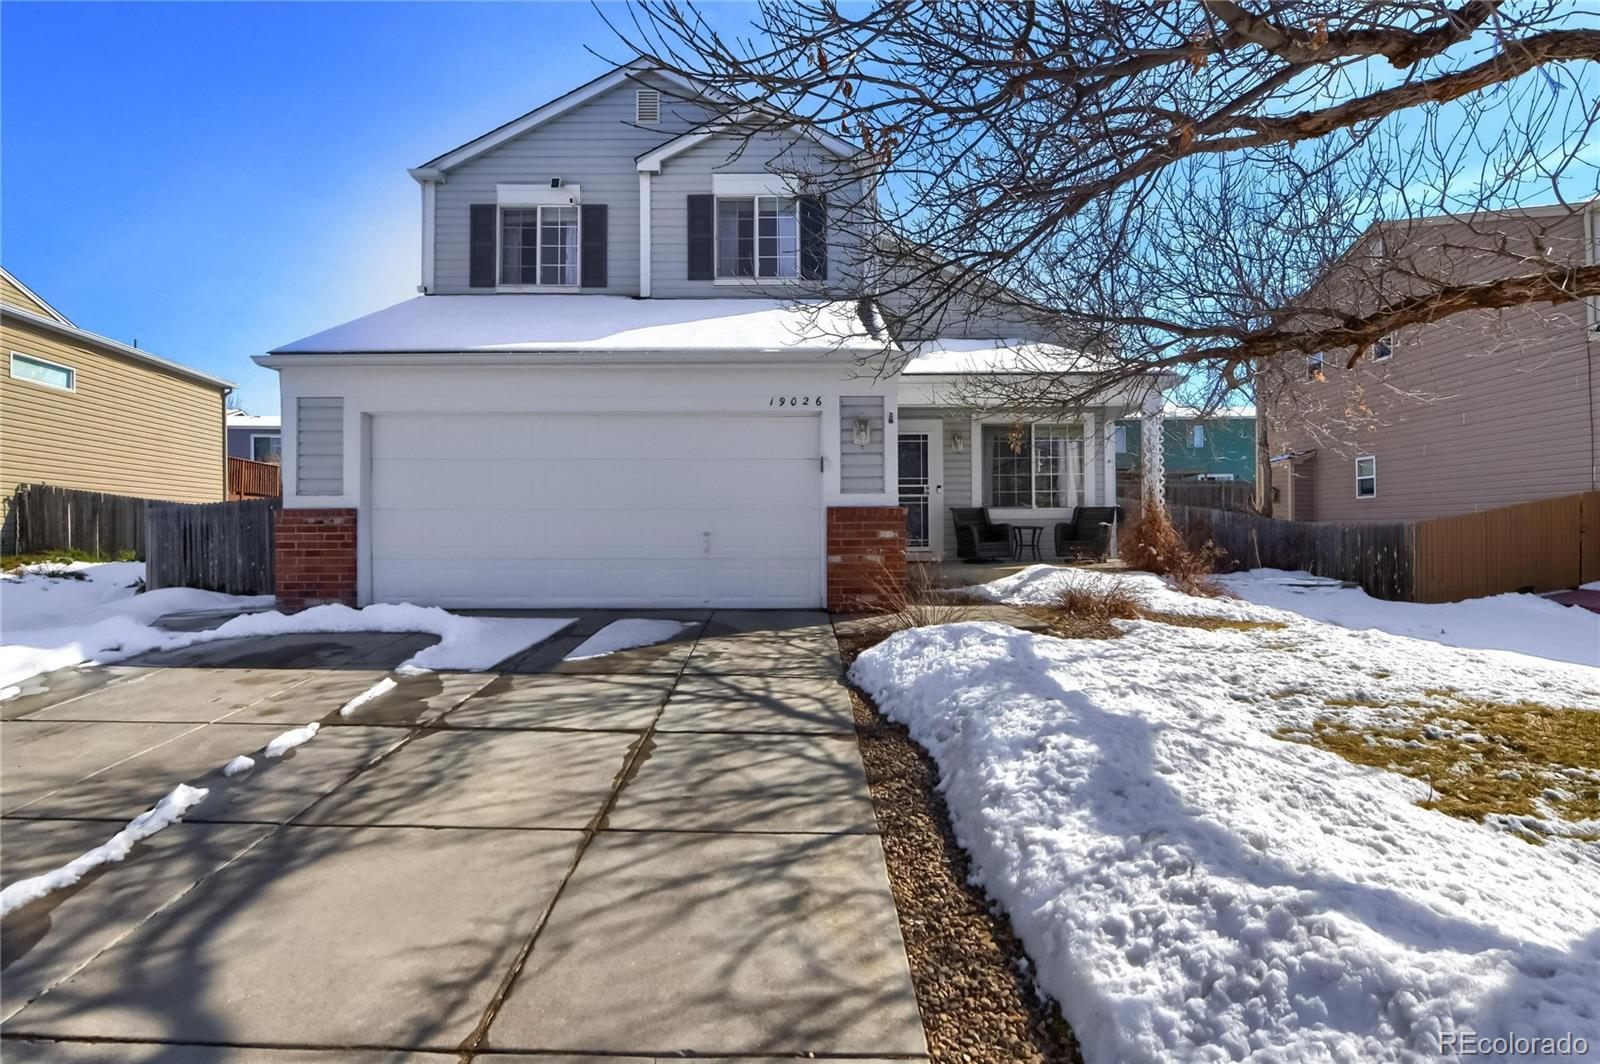 19026 E Ithaca Place, Aurora, CO 80013 - #: 9212715